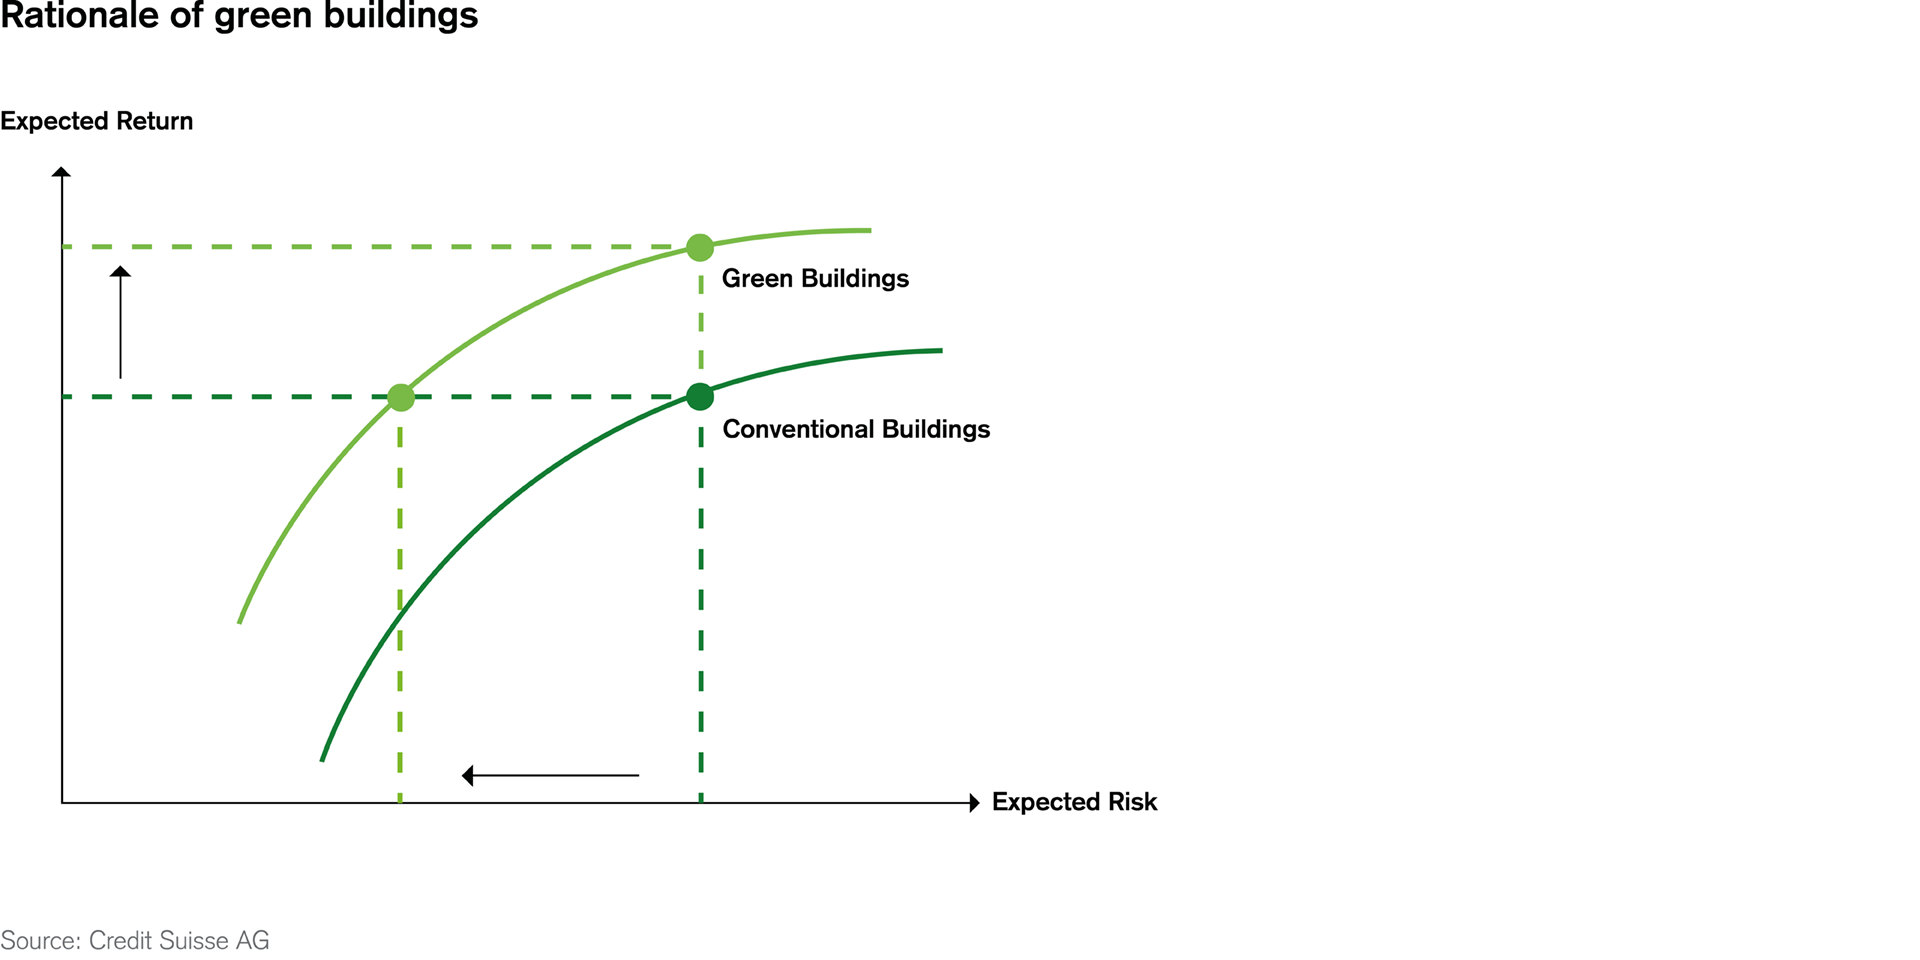 Rationale of green buildings